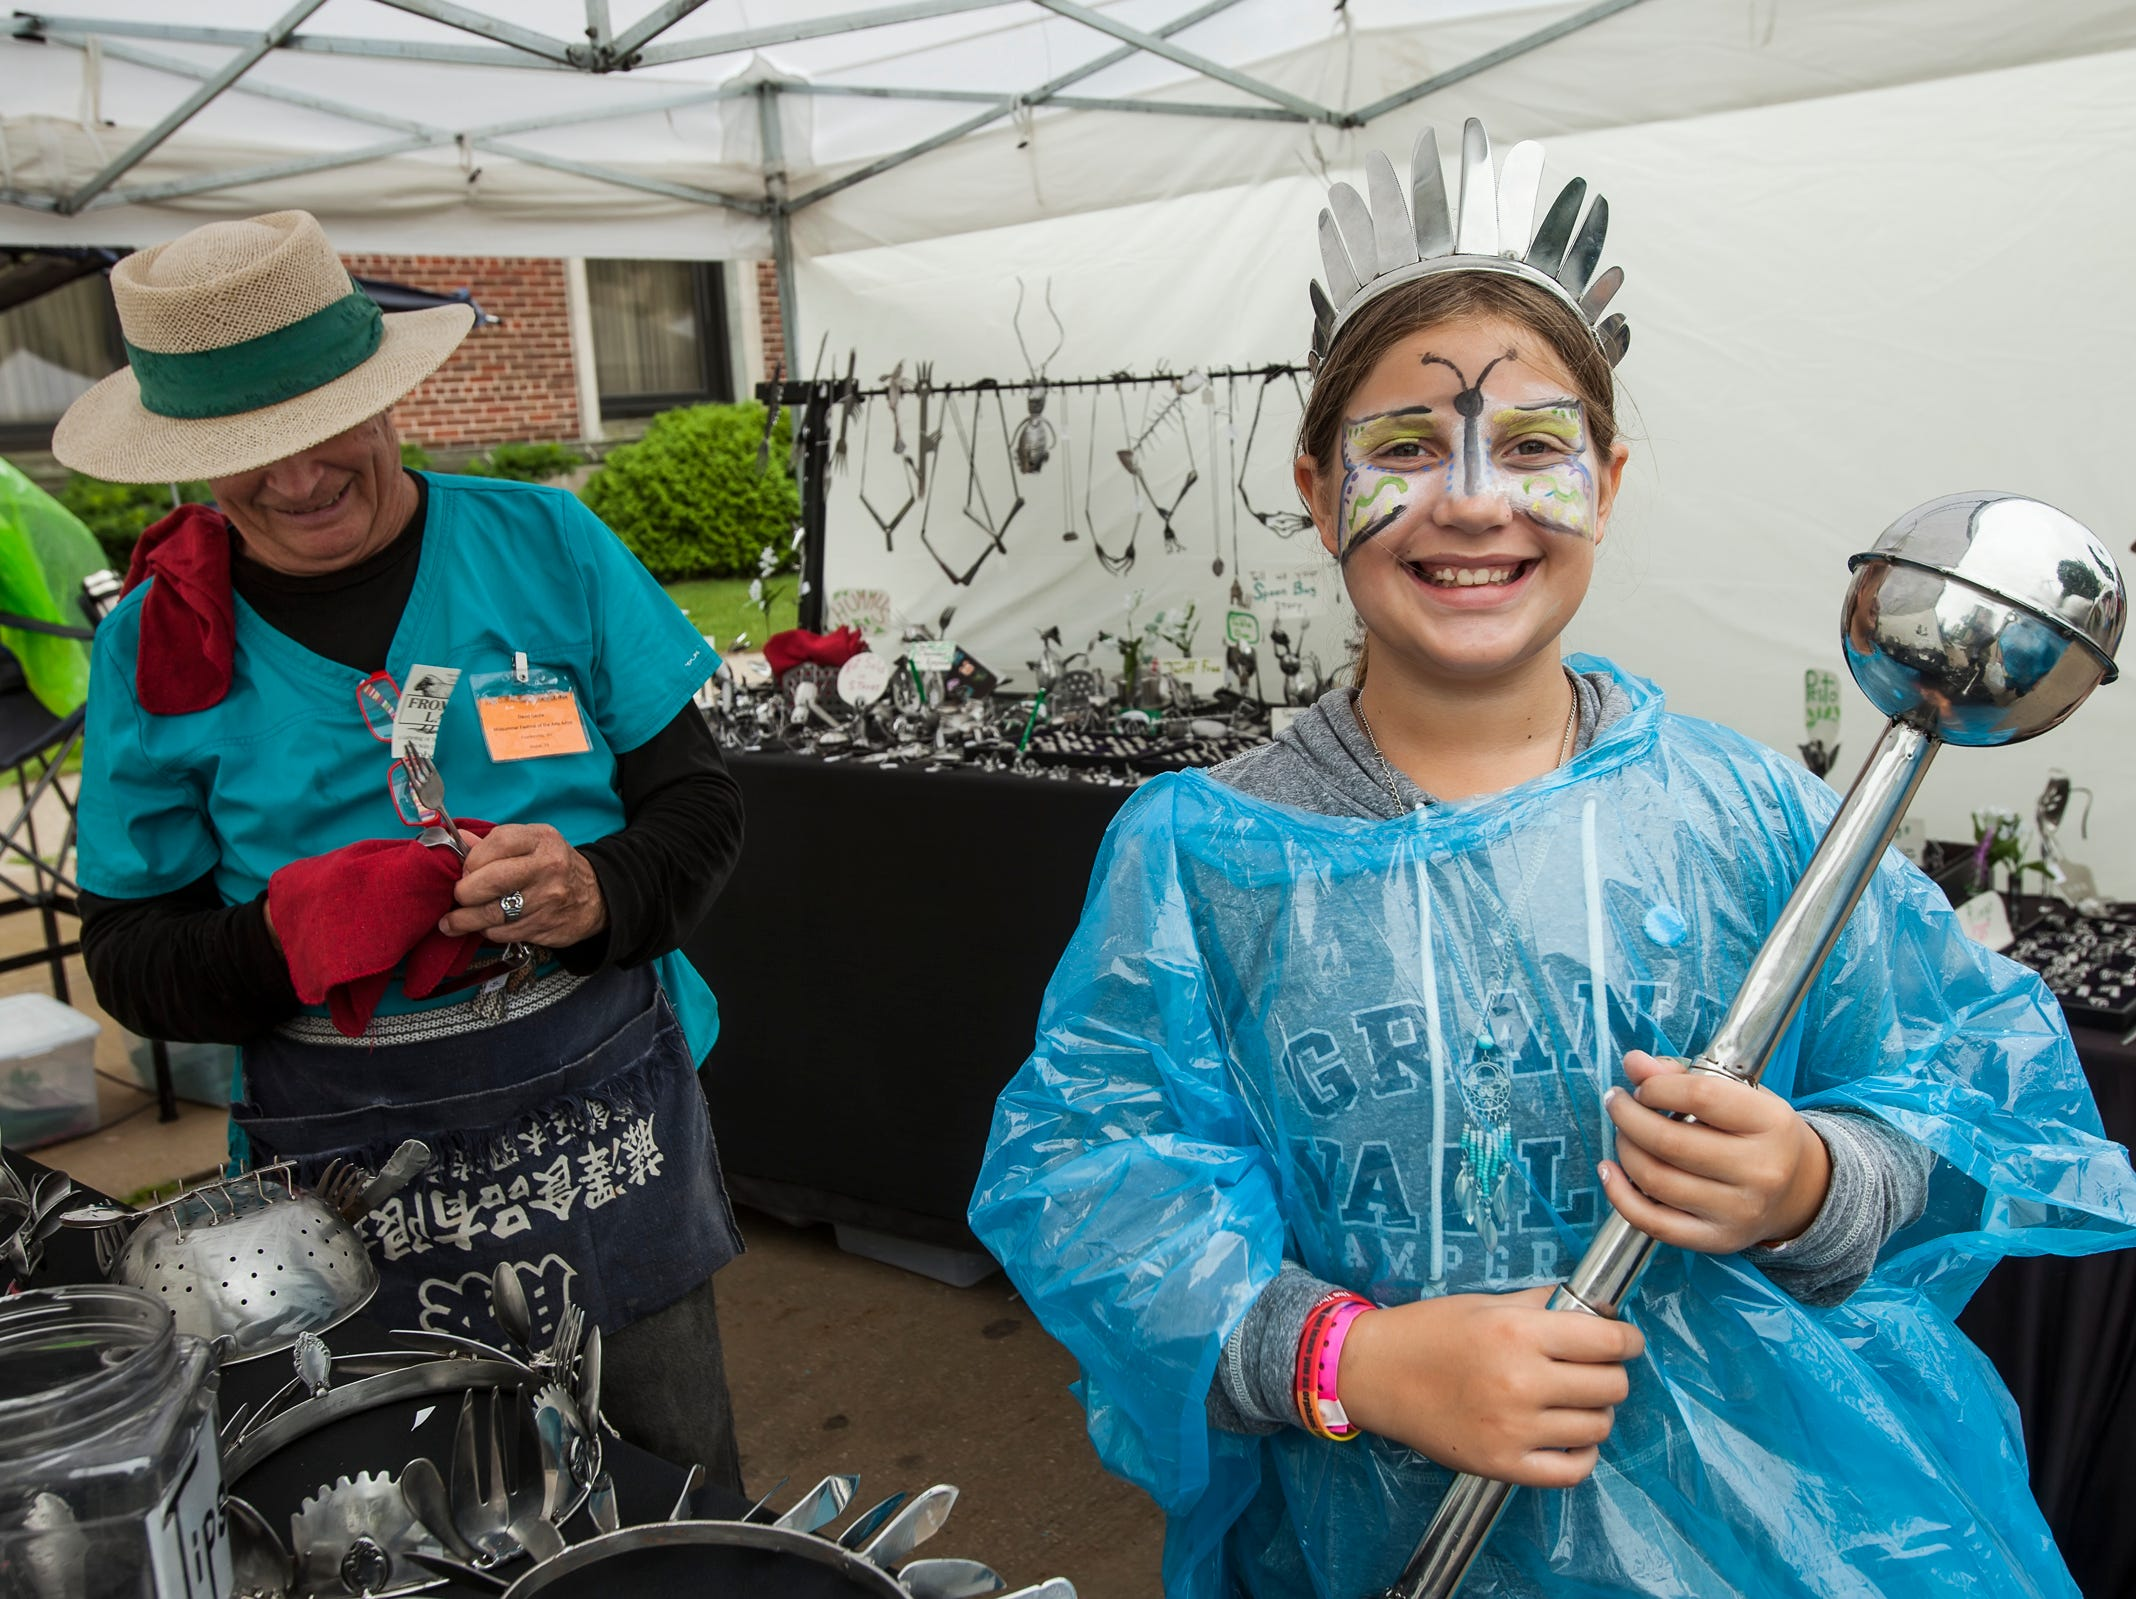 Alaina Neitel, 10, of Plymouth models a crown and wand from the Spoon Bug at the Midsummer Festival of the Arts in Sheboygan on July 21.